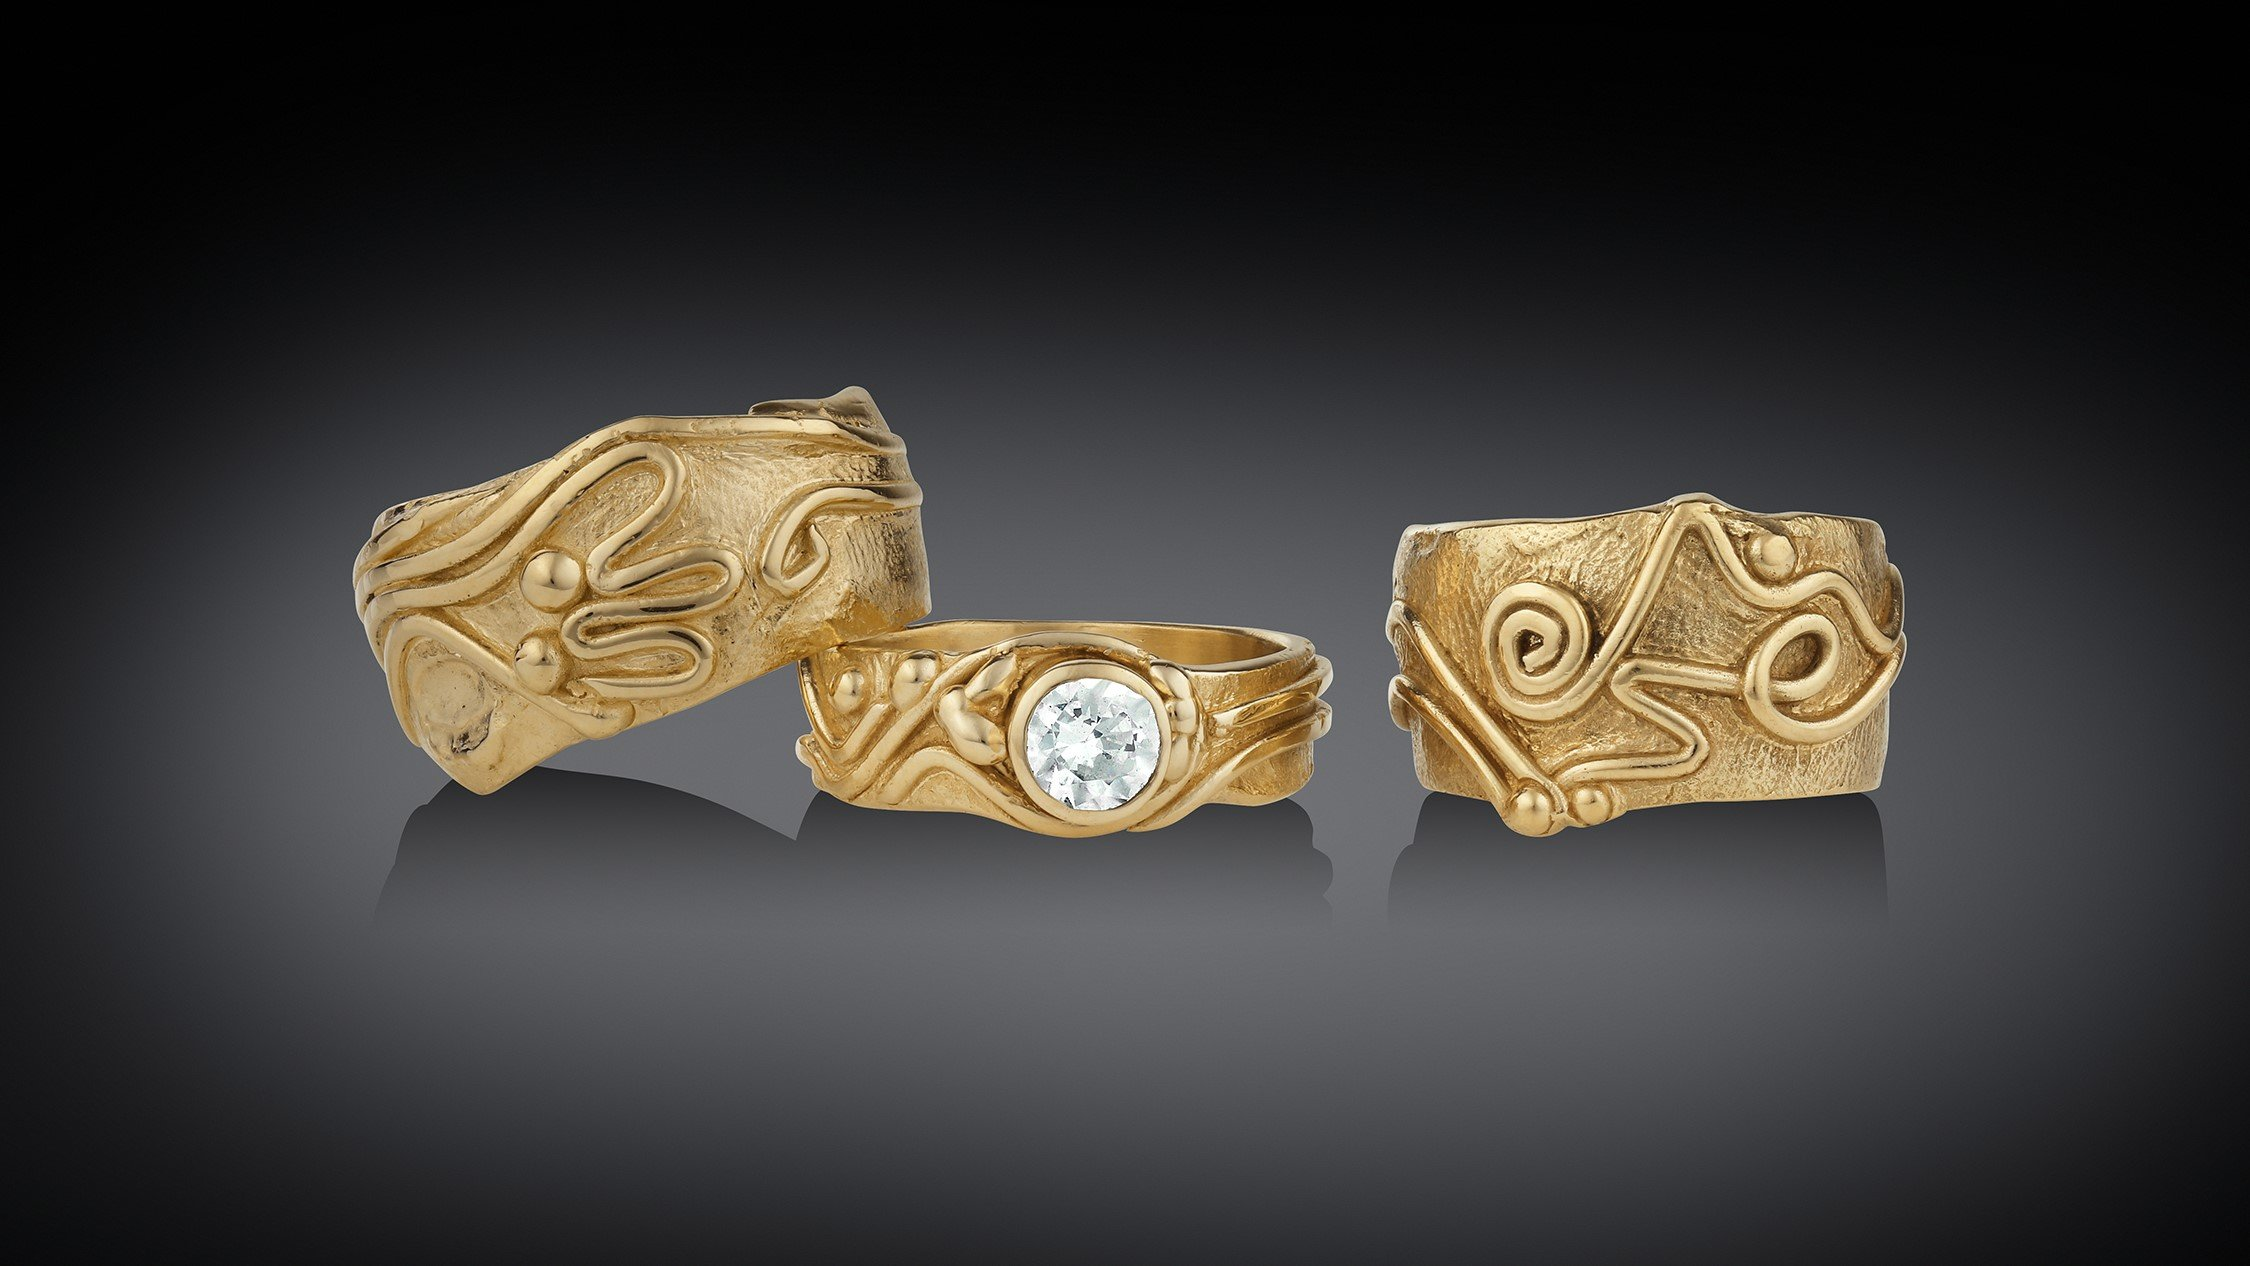 14K & 18K Gold Freestyle Ring Set by Geralyn Sheridan Designs